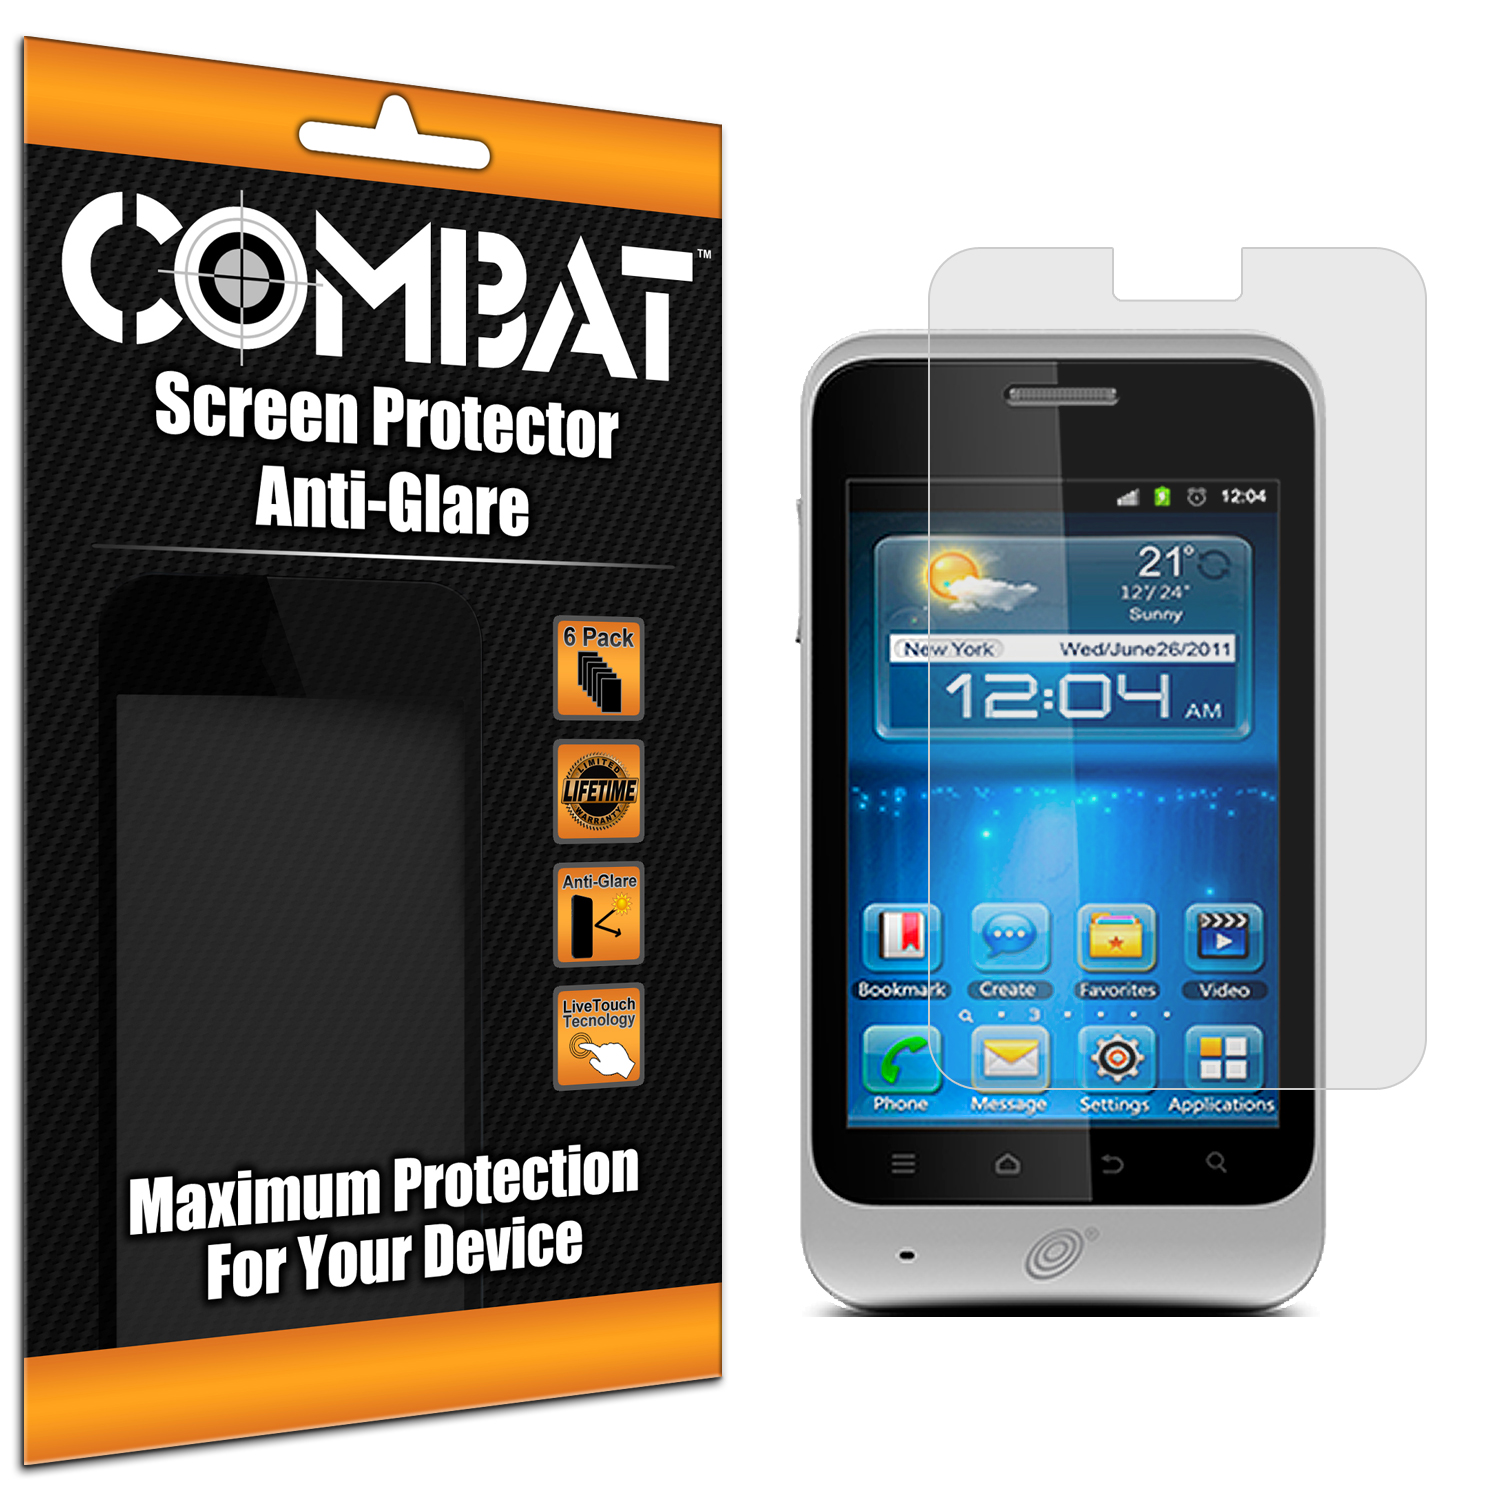 ZTE Illustra Z788G Combat 6 Pack Anti-Glare Matte Screen Protector